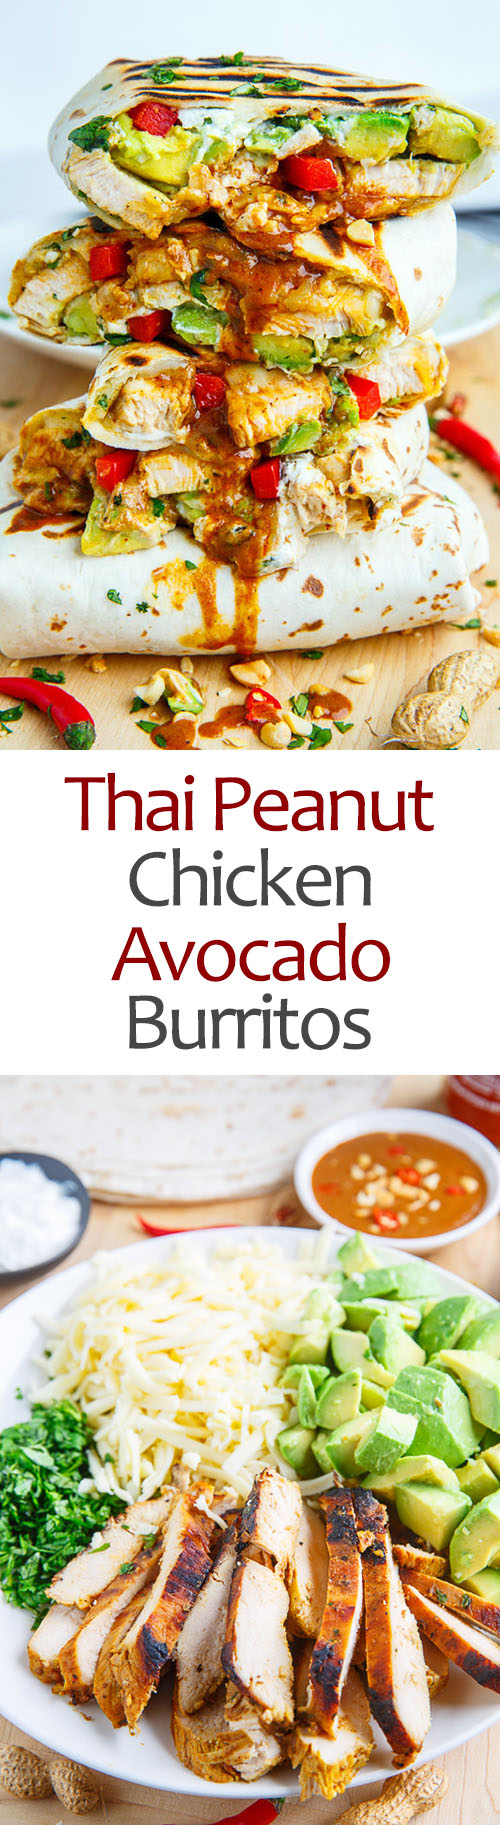 Thai Peanut Chicken Avocado Burritos